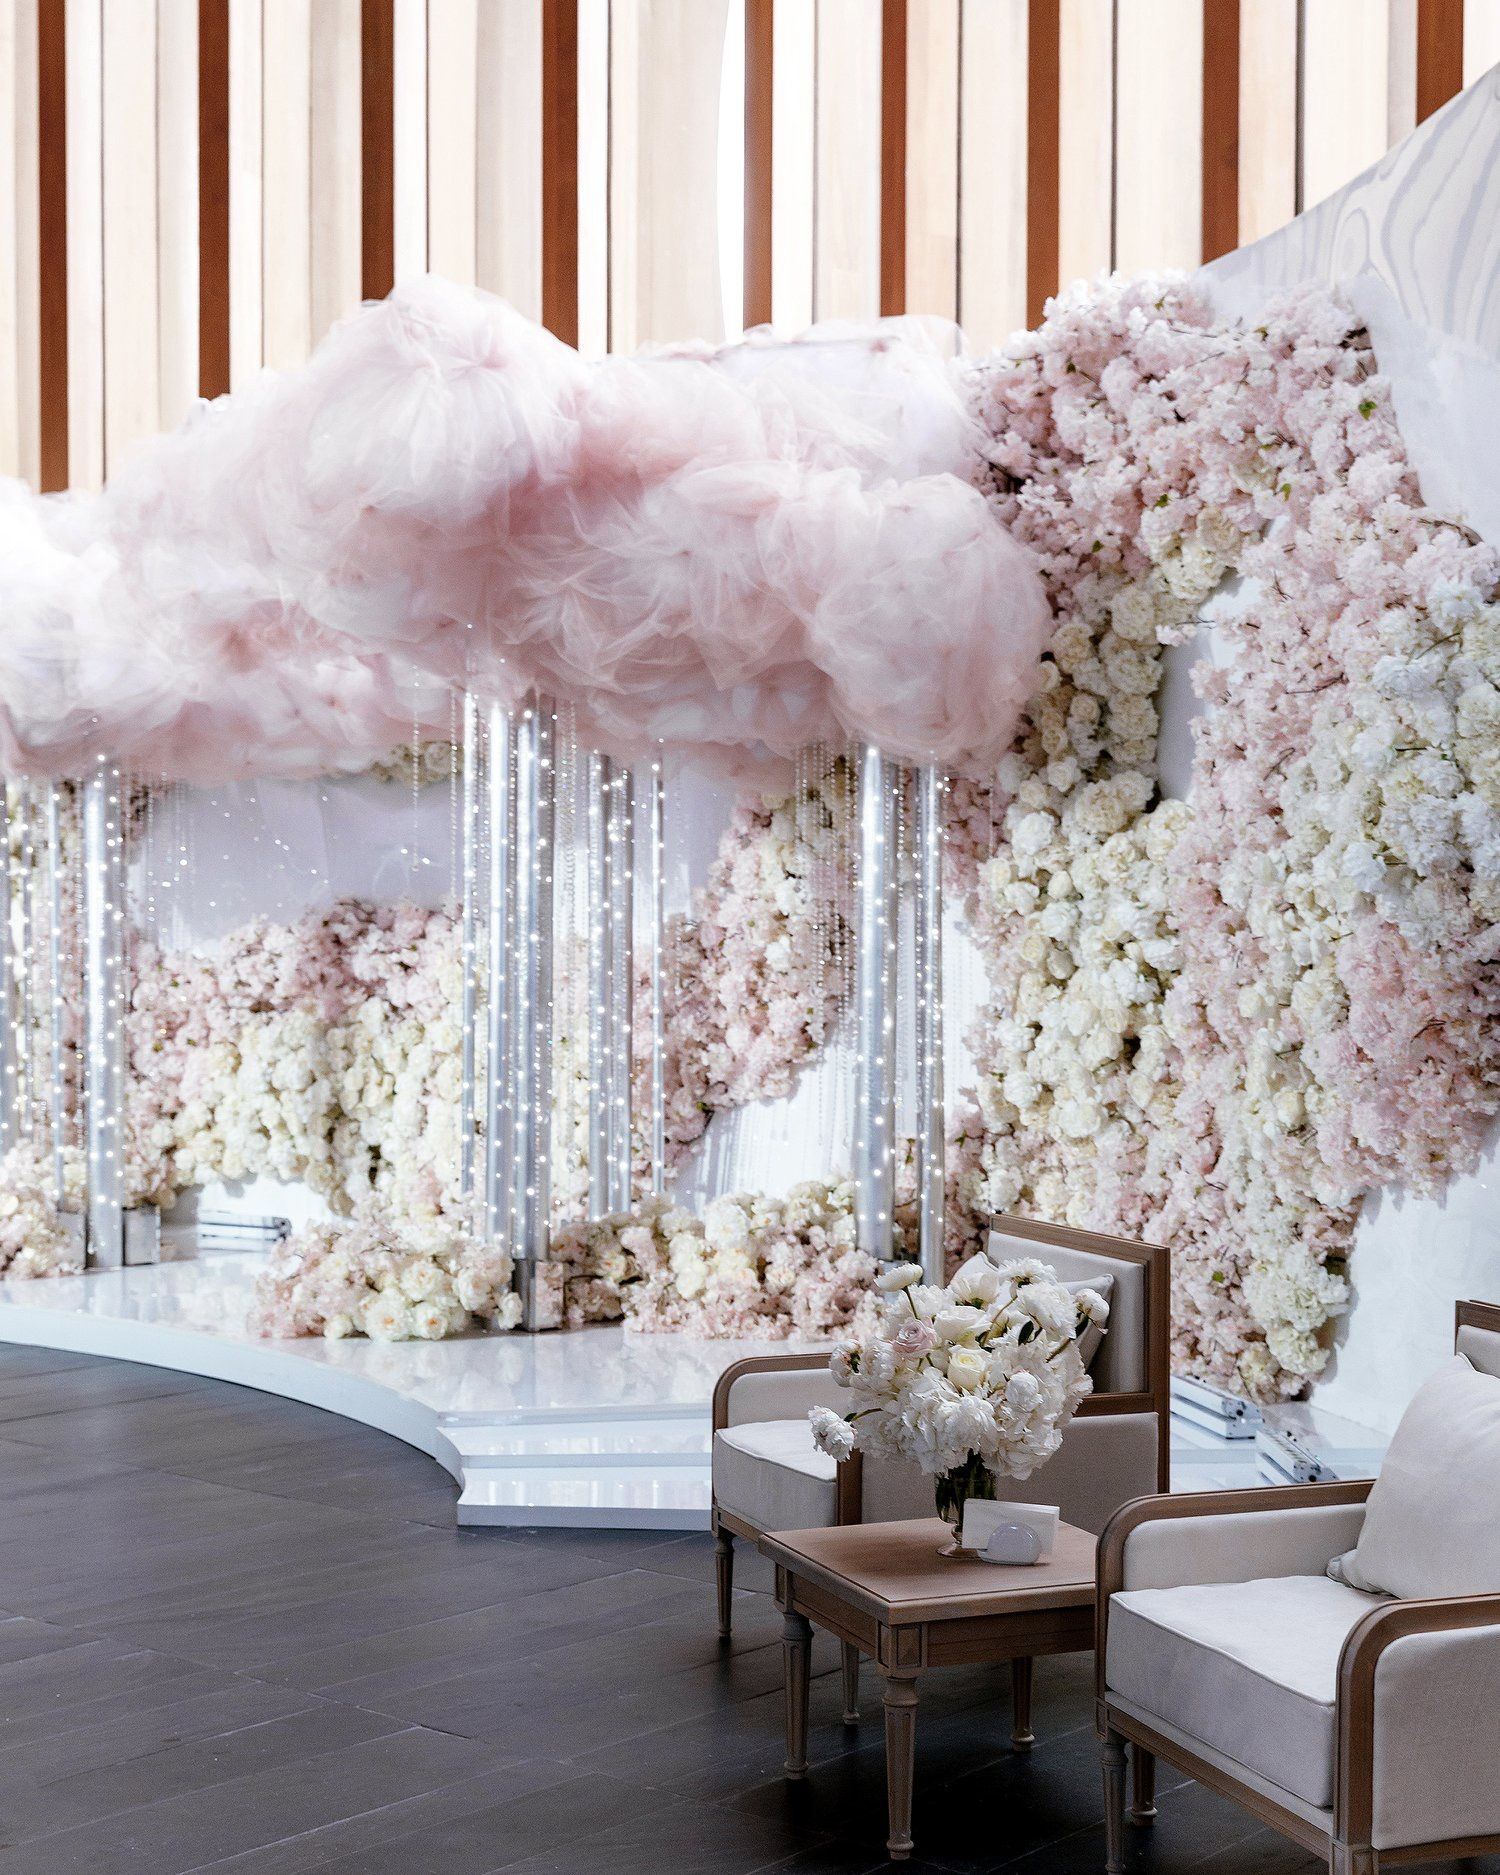 Magical Wedding Backdrop Ideas: #Flowers #Wedding #Engagement #Event #Magical #Party